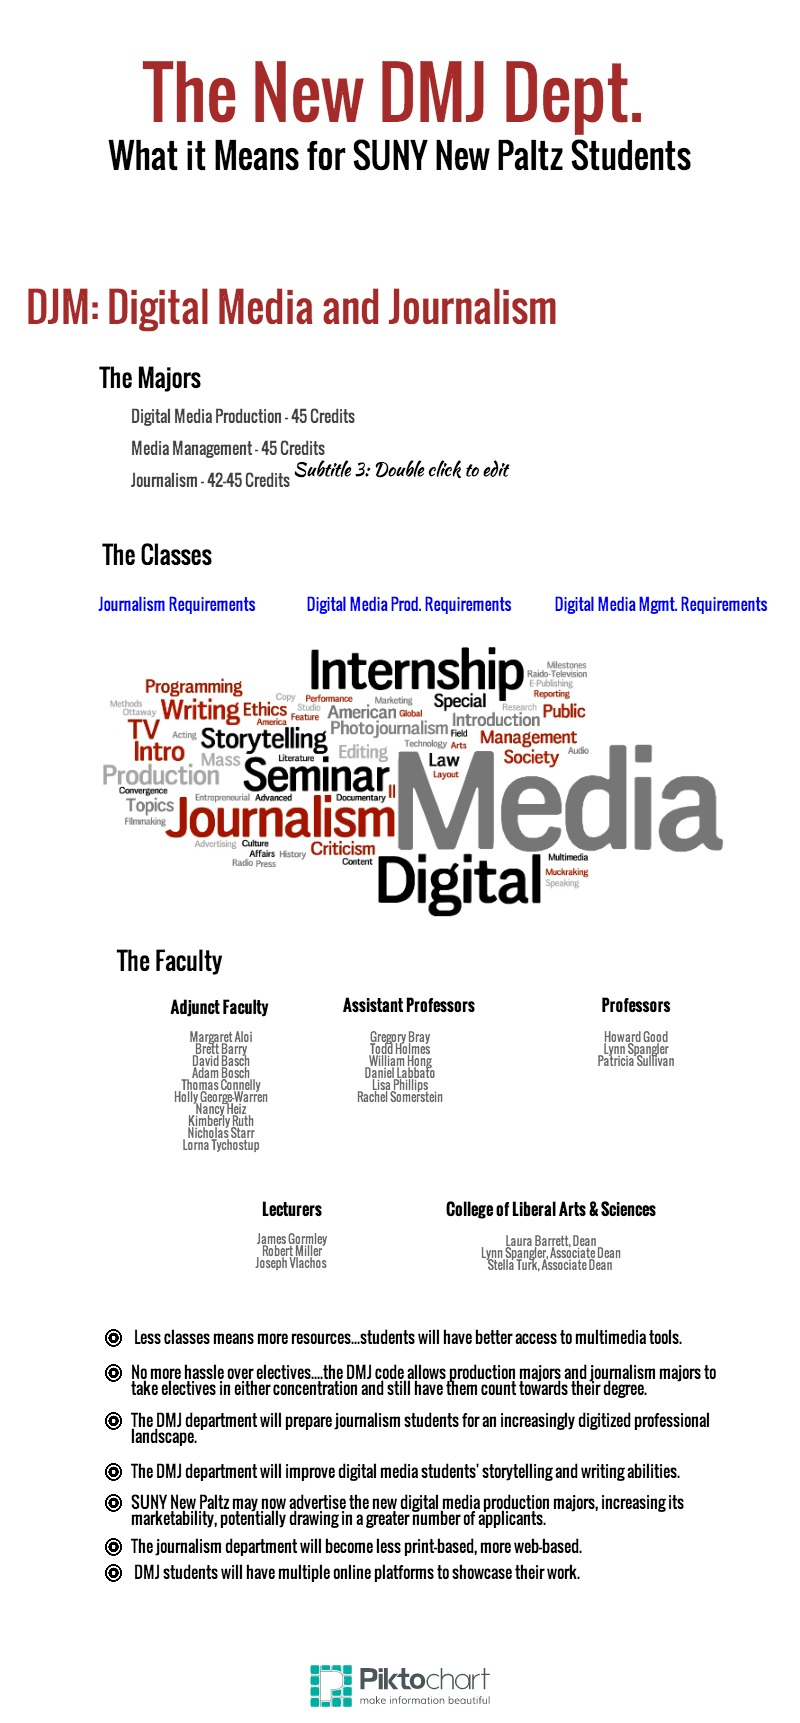 New Digital Media and Journalism Department